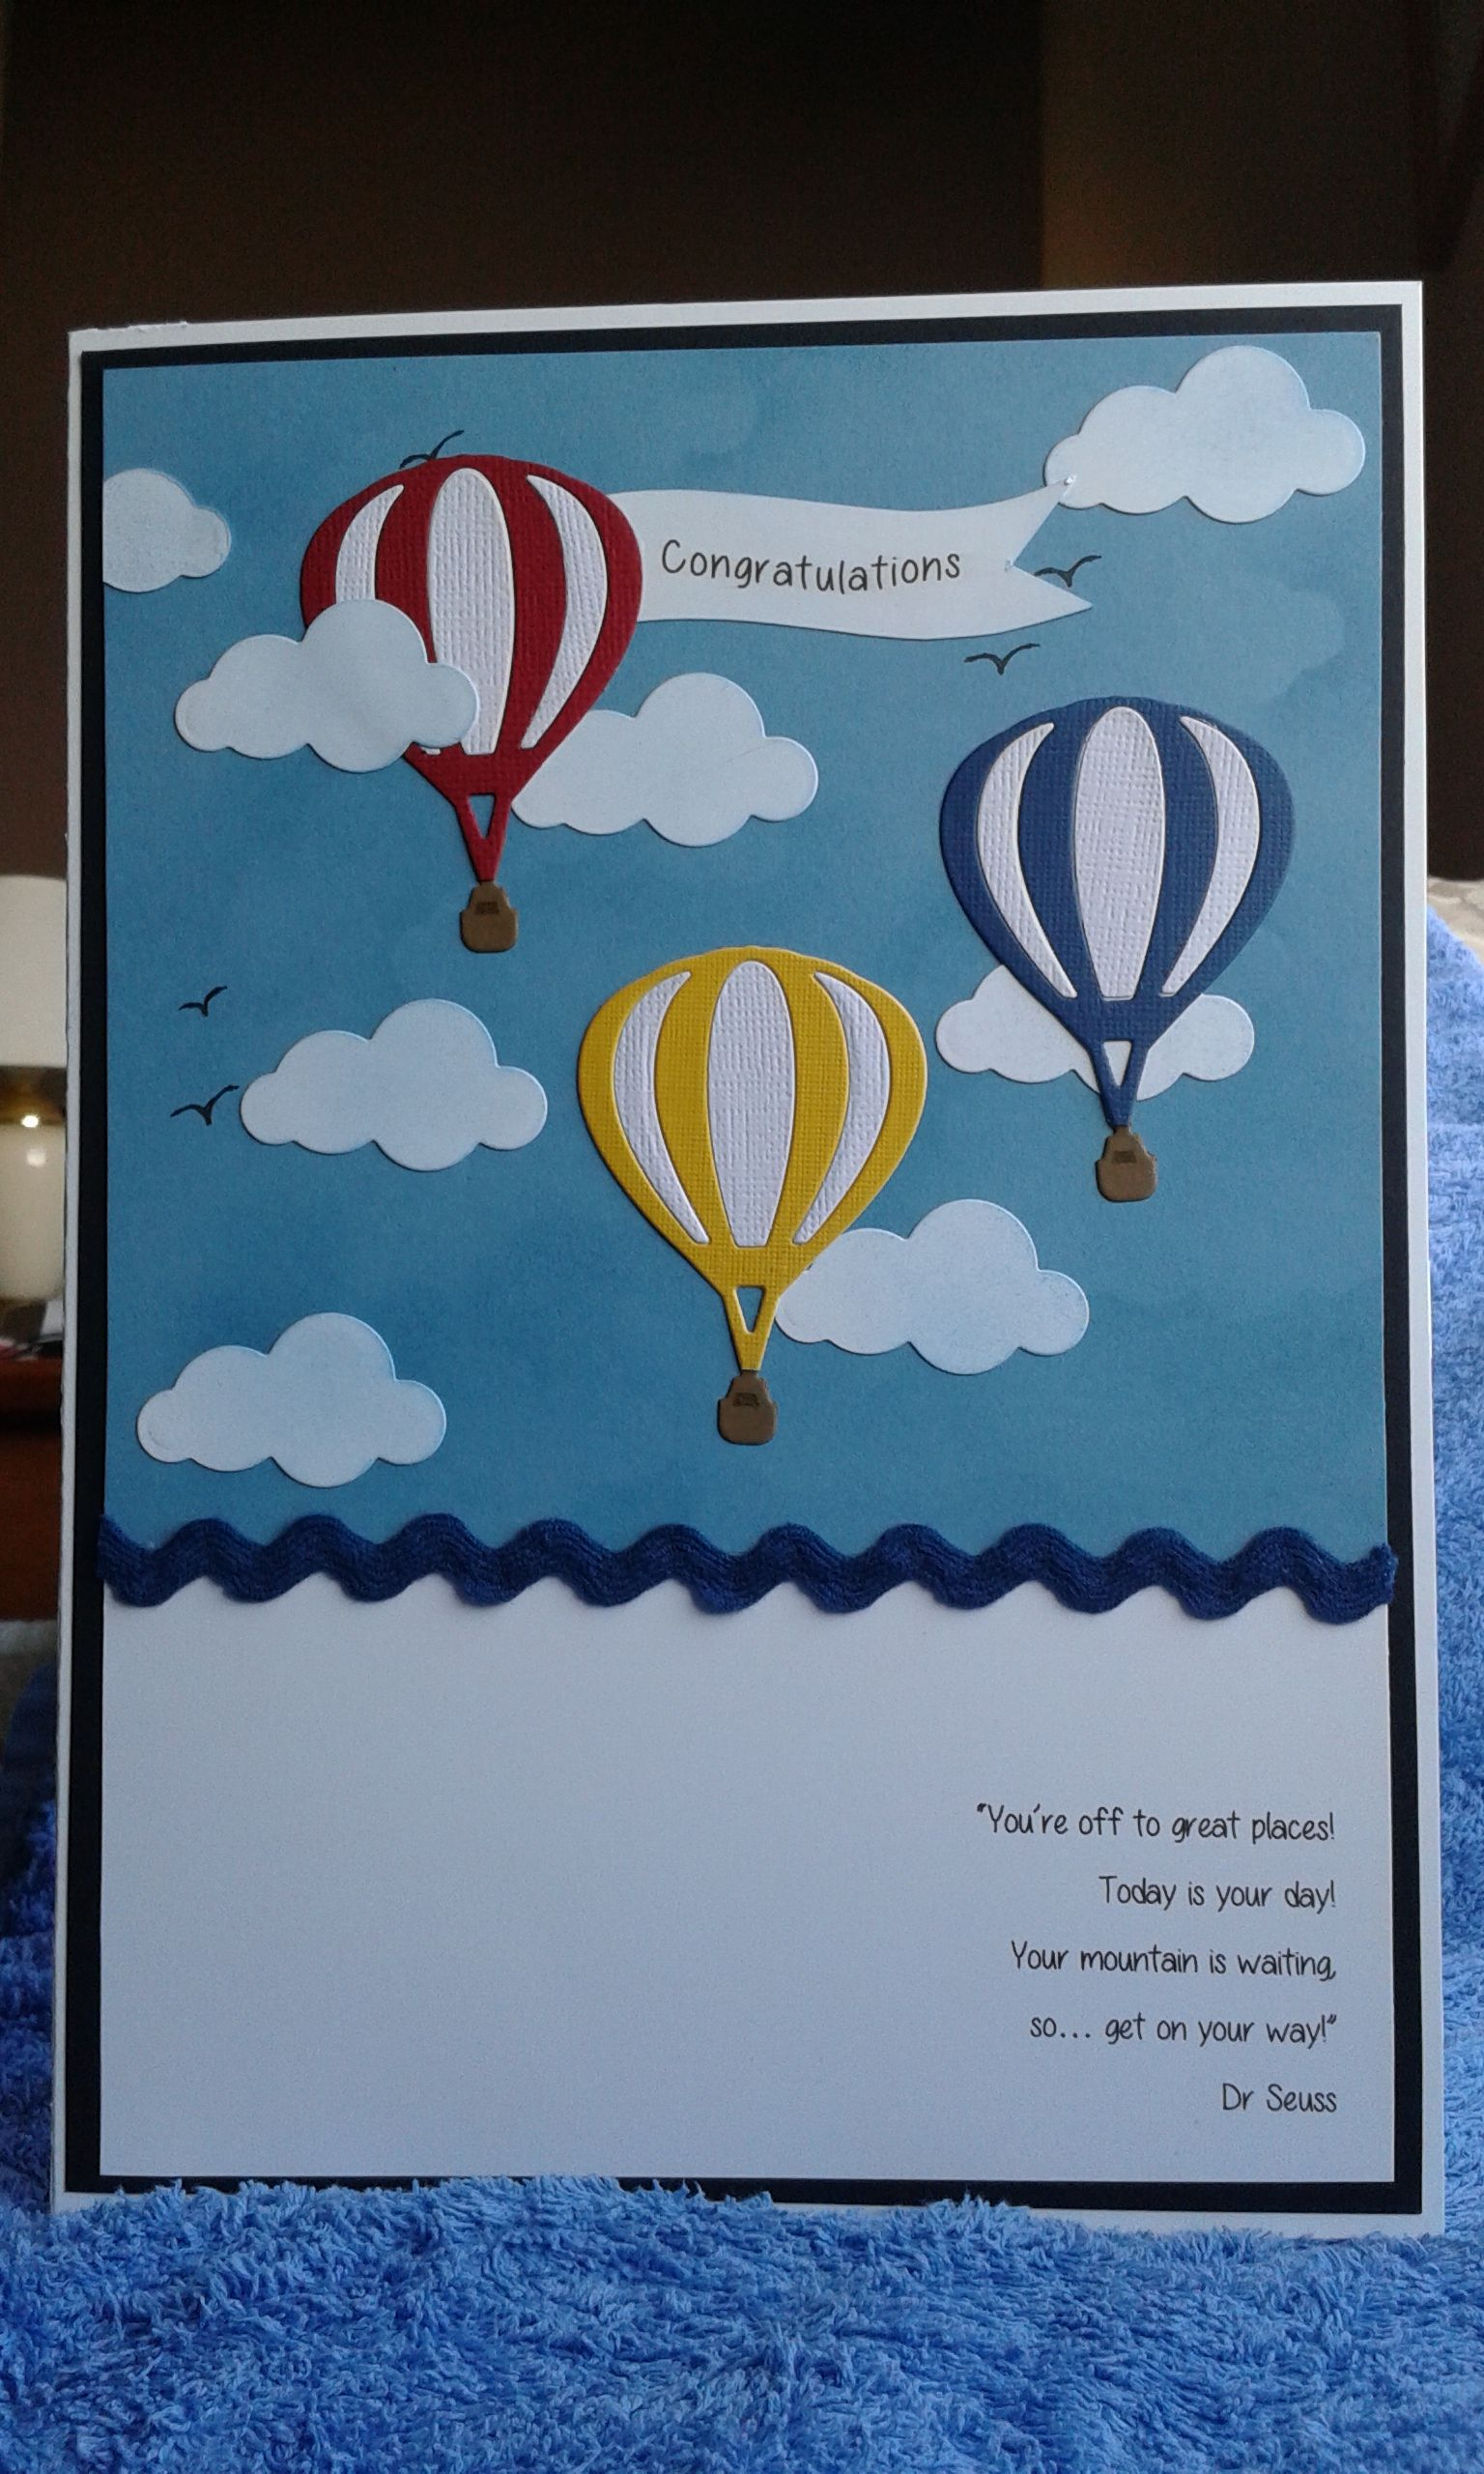 Handmade Card Congratulations On The New Job Leaving Card Hot Air